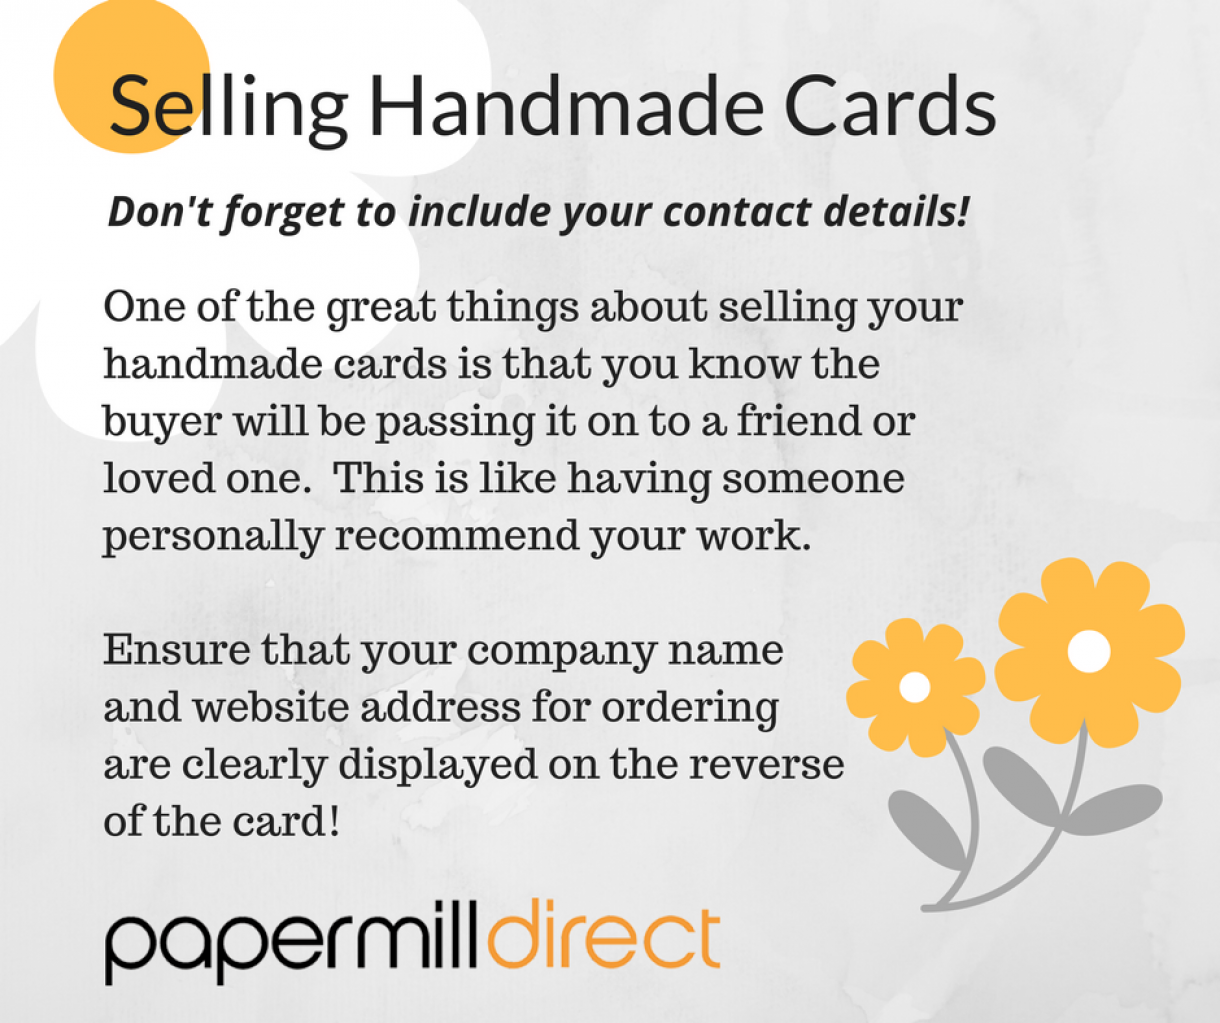 Selling  Handmade  Cards Adding Contact Details